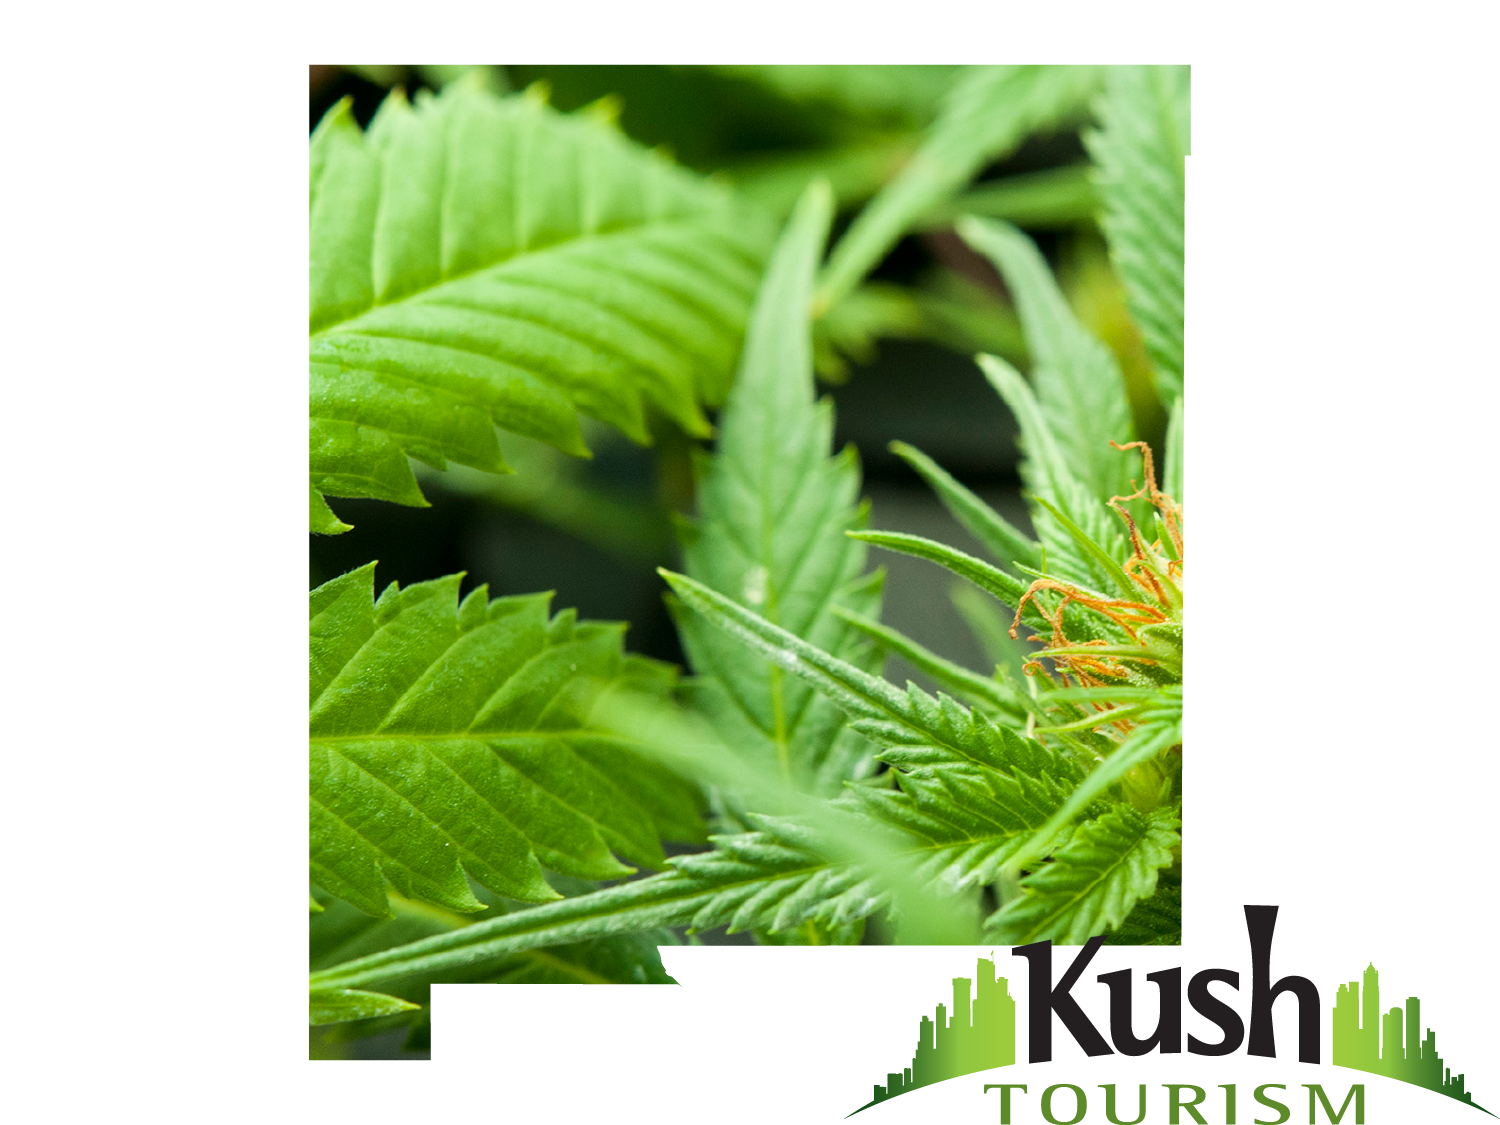 legalization of marijuana in new mexico In june, mexico legalized medical marijuana now, its set to legalize marijuana-based products like foods and topicals in 2018.